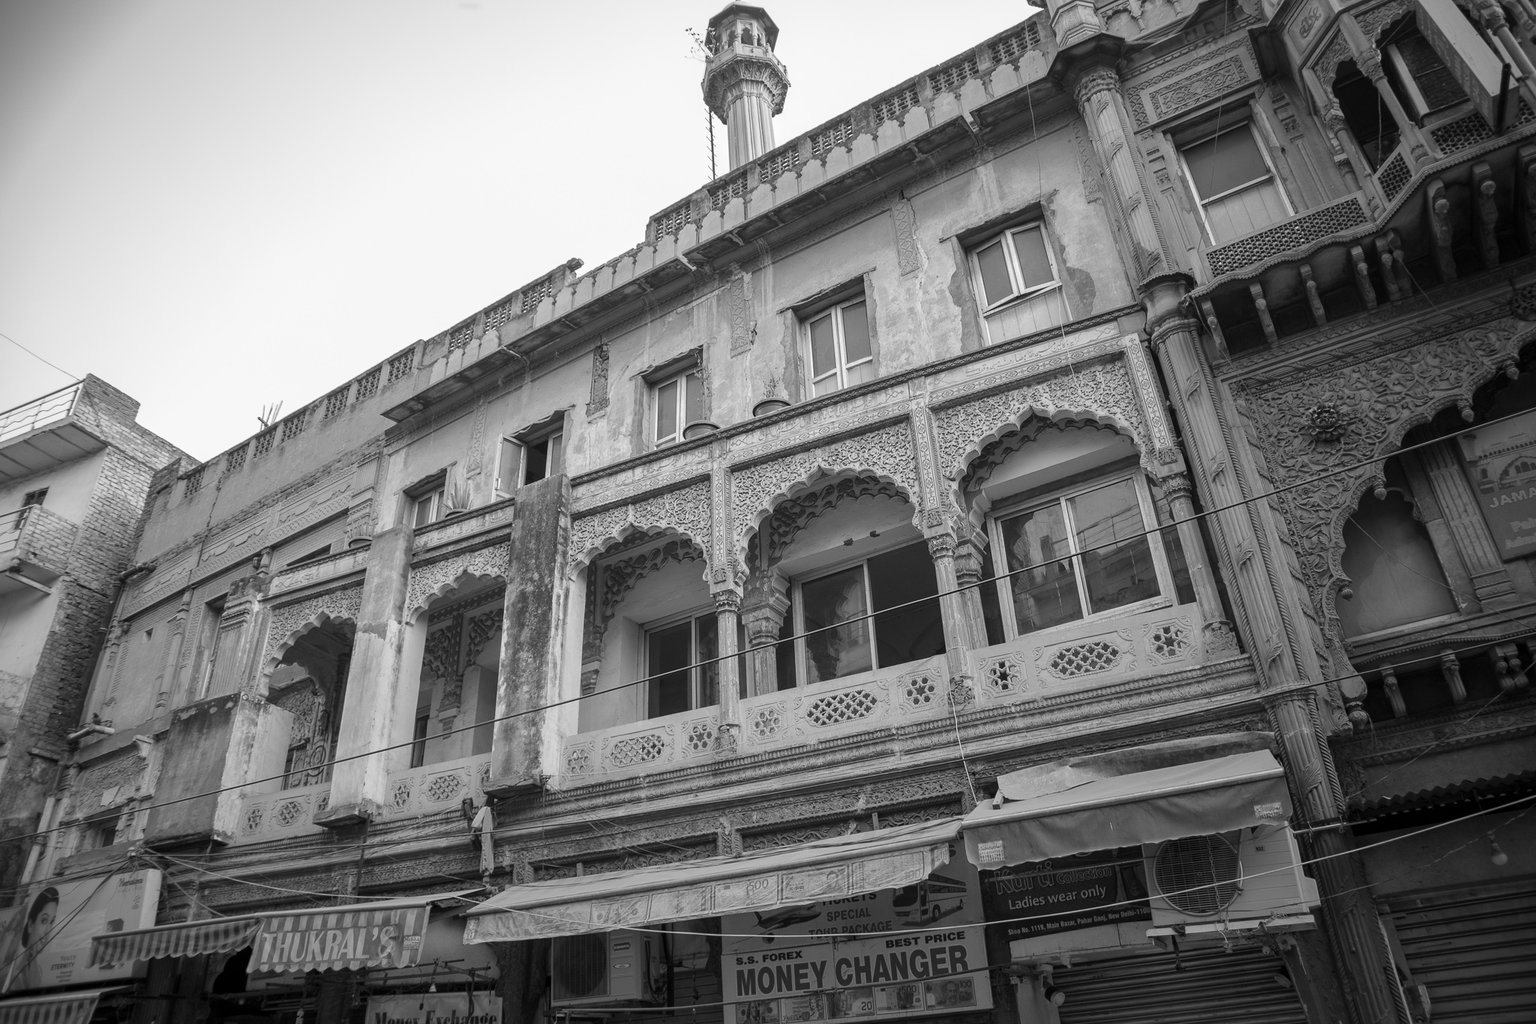 The crumbling facades just add to the character of Paharganj